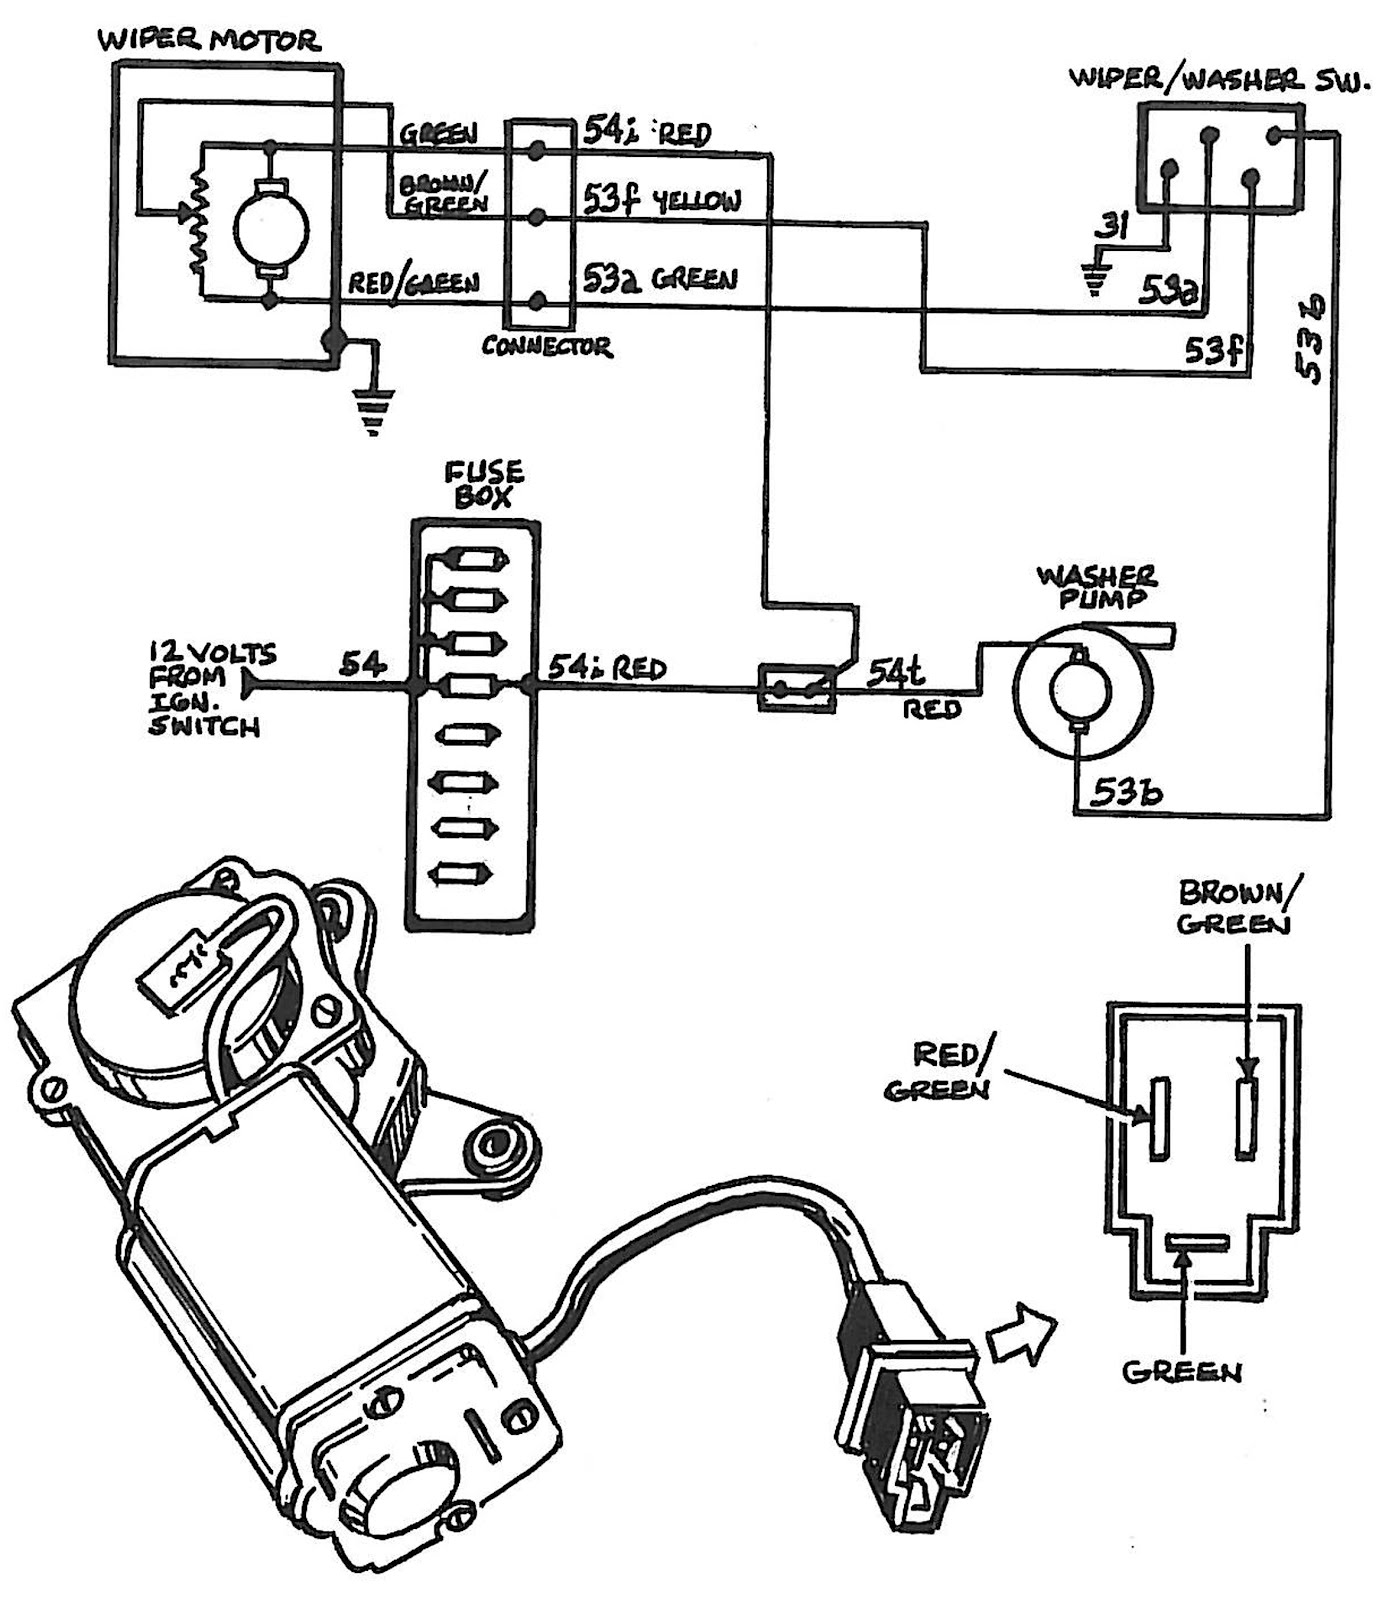 Wiring Diagram For Boat Wiper Motor Powerking